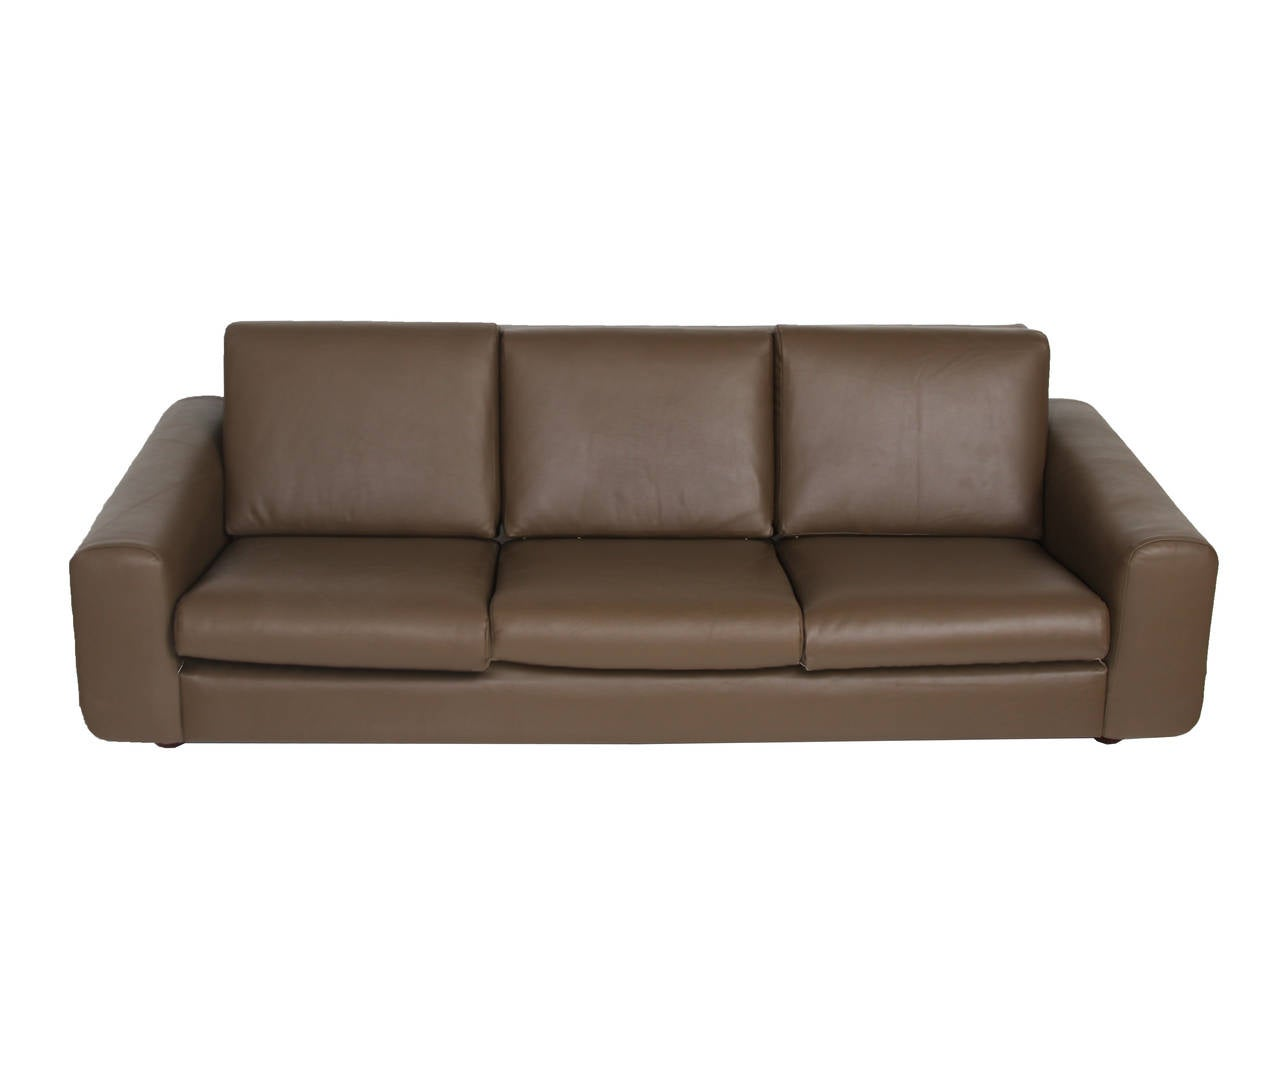 Tendo Brasileira Rosewood and Leather Sofa 2